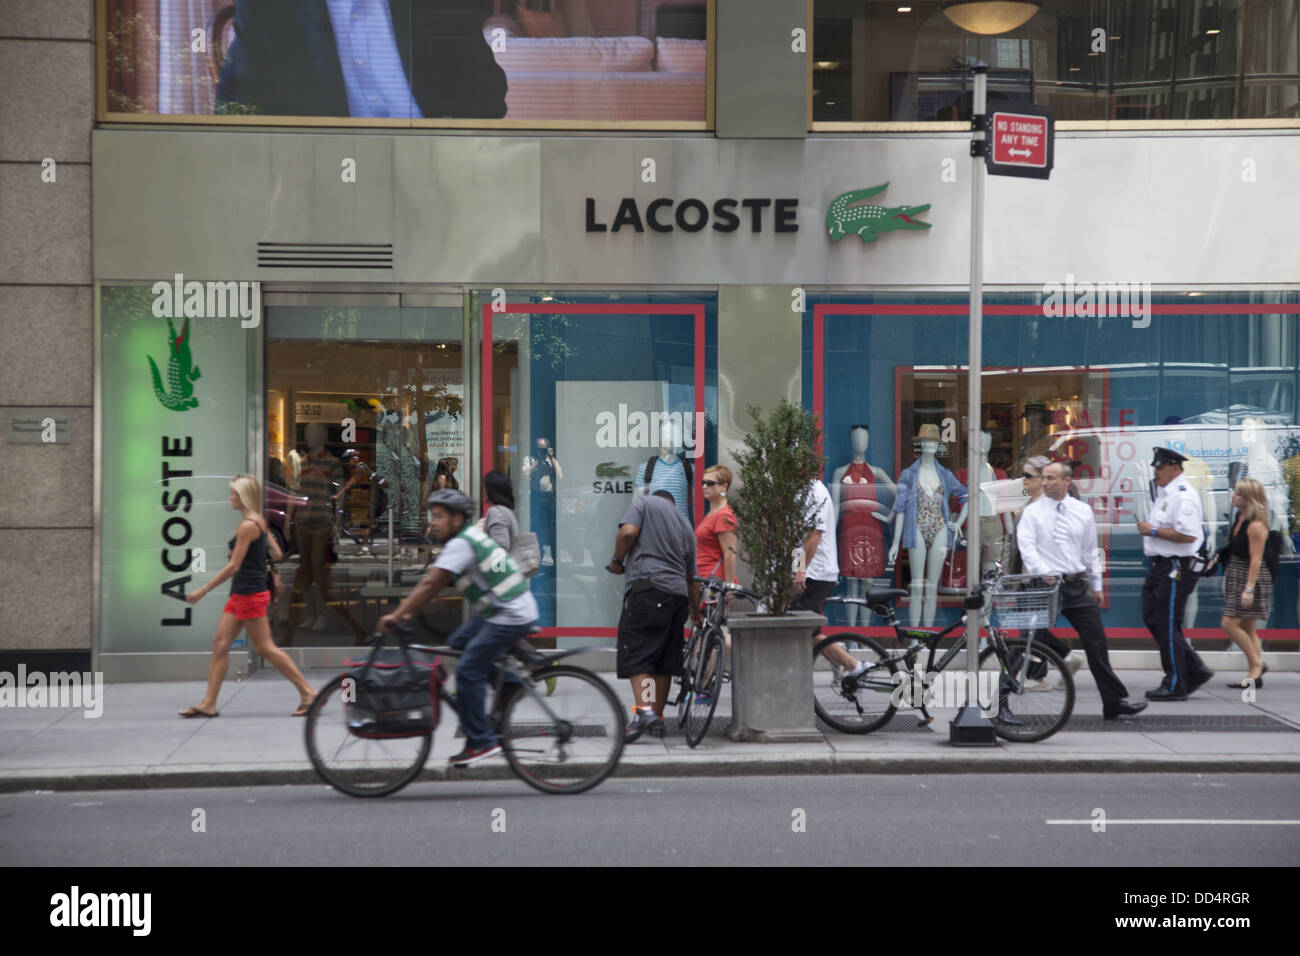 1a9053a374a181 People walk passed LACOSTE store along 5th Avenue in New York City ...